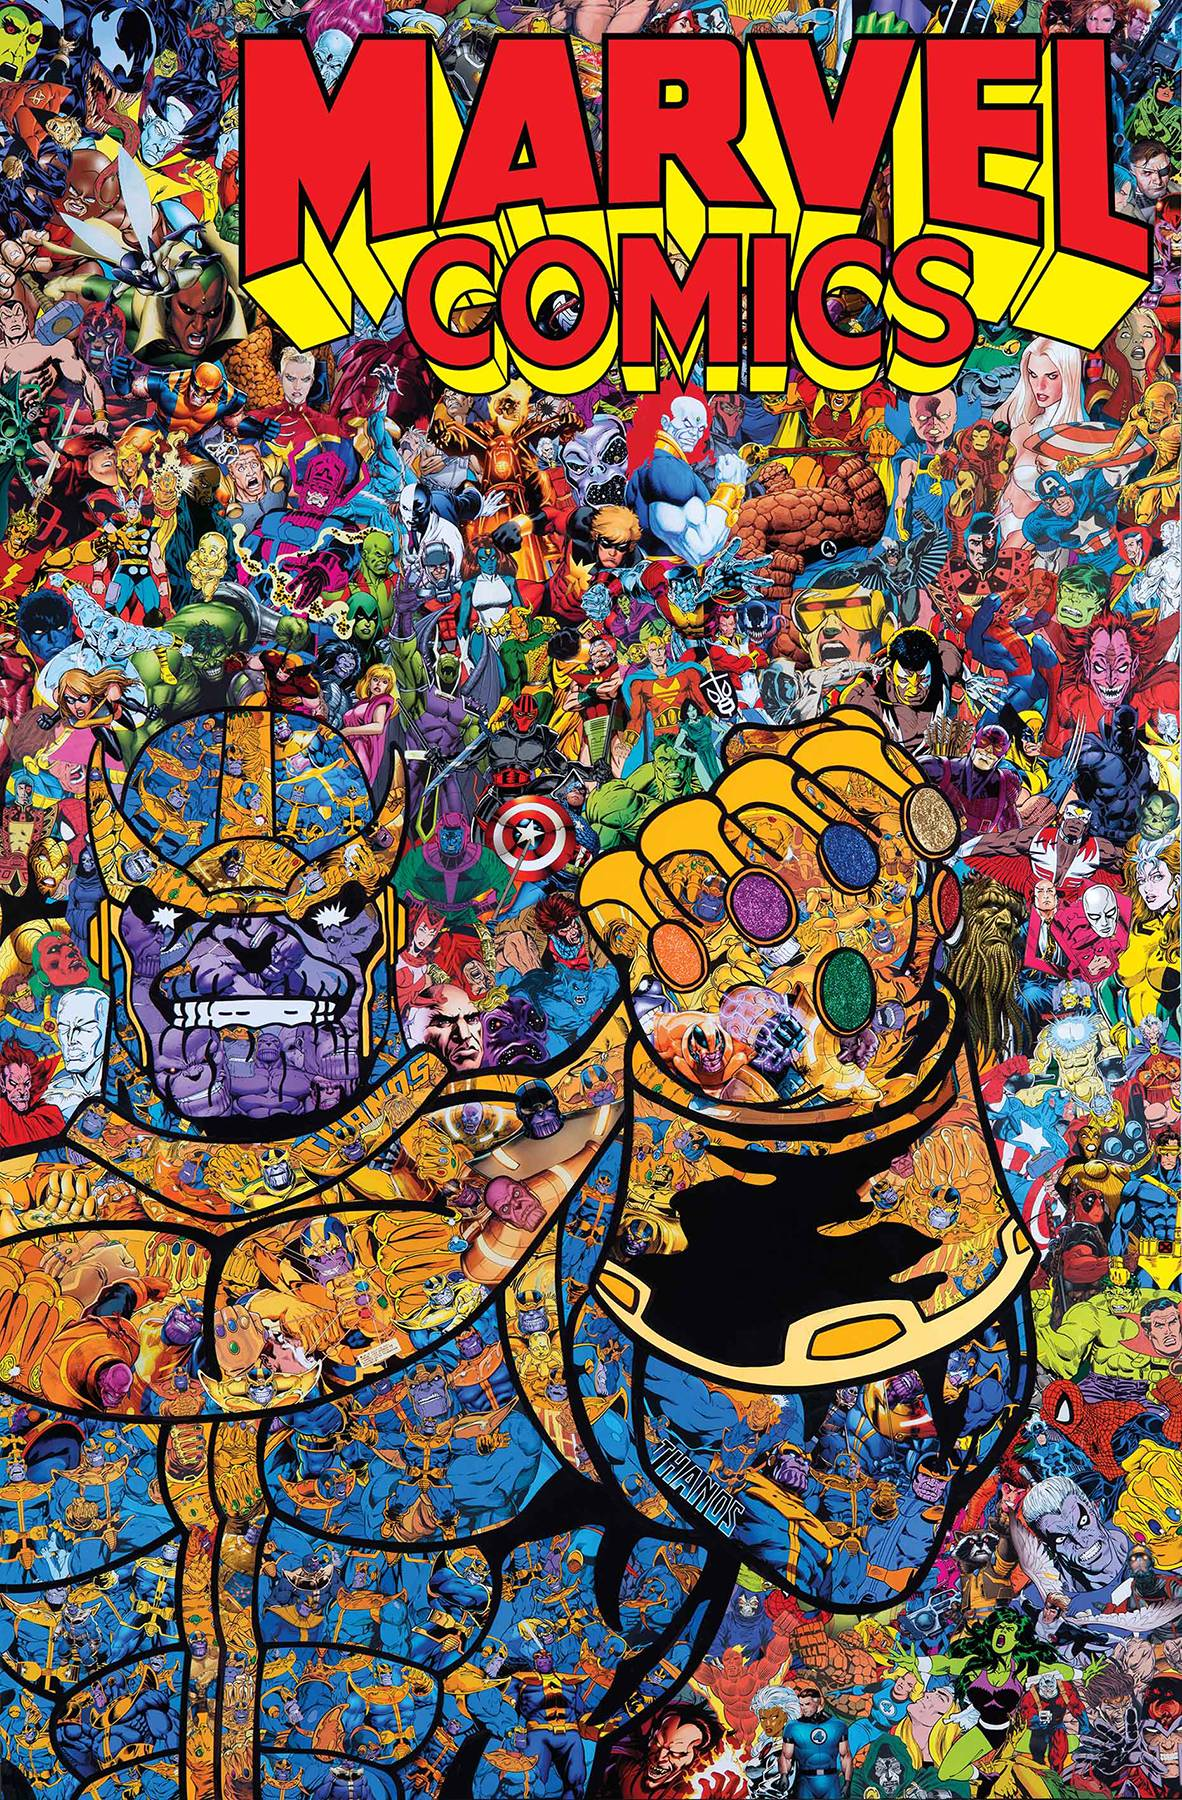 MARVEL COMICS 1001 MR GARCIN VAR.jpg